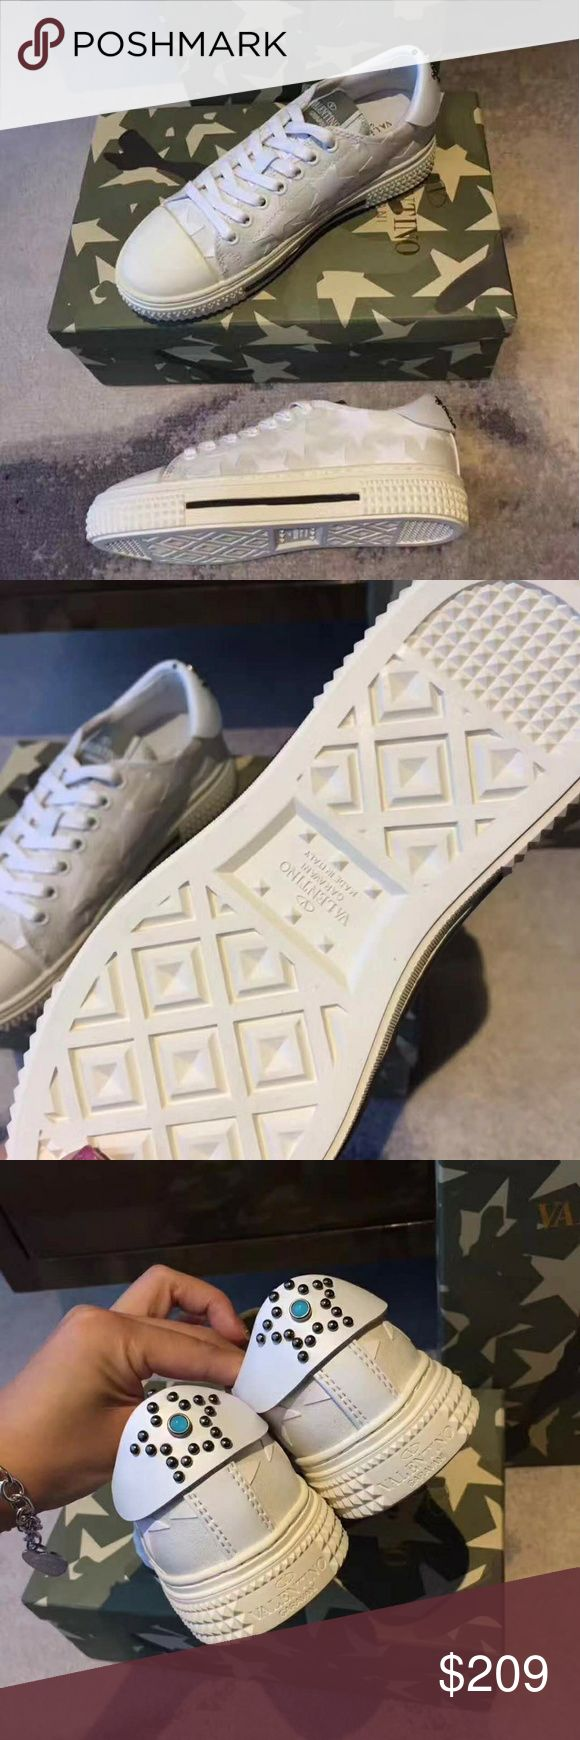 Valentino Sneakers Valentino Sneakers. Price reflects authenticity. Top quality. Run small order full size up. Please fallow a size  chart. Delivery 2 weeks. No returns or exchanges. size eu 36 = 22,5 - 23 cm, size eu 37 = 23 - 23,5 cm, size eu 38 = 23,5 - 24 cm, size eu 39 = 24 - 24,5 cm, size eu 40 = 24,5 - 25 cm, size eu 41 = 25 - 25,5 cm, size eu 42 = 25,5 - 26 cm. Shoes Sneakers